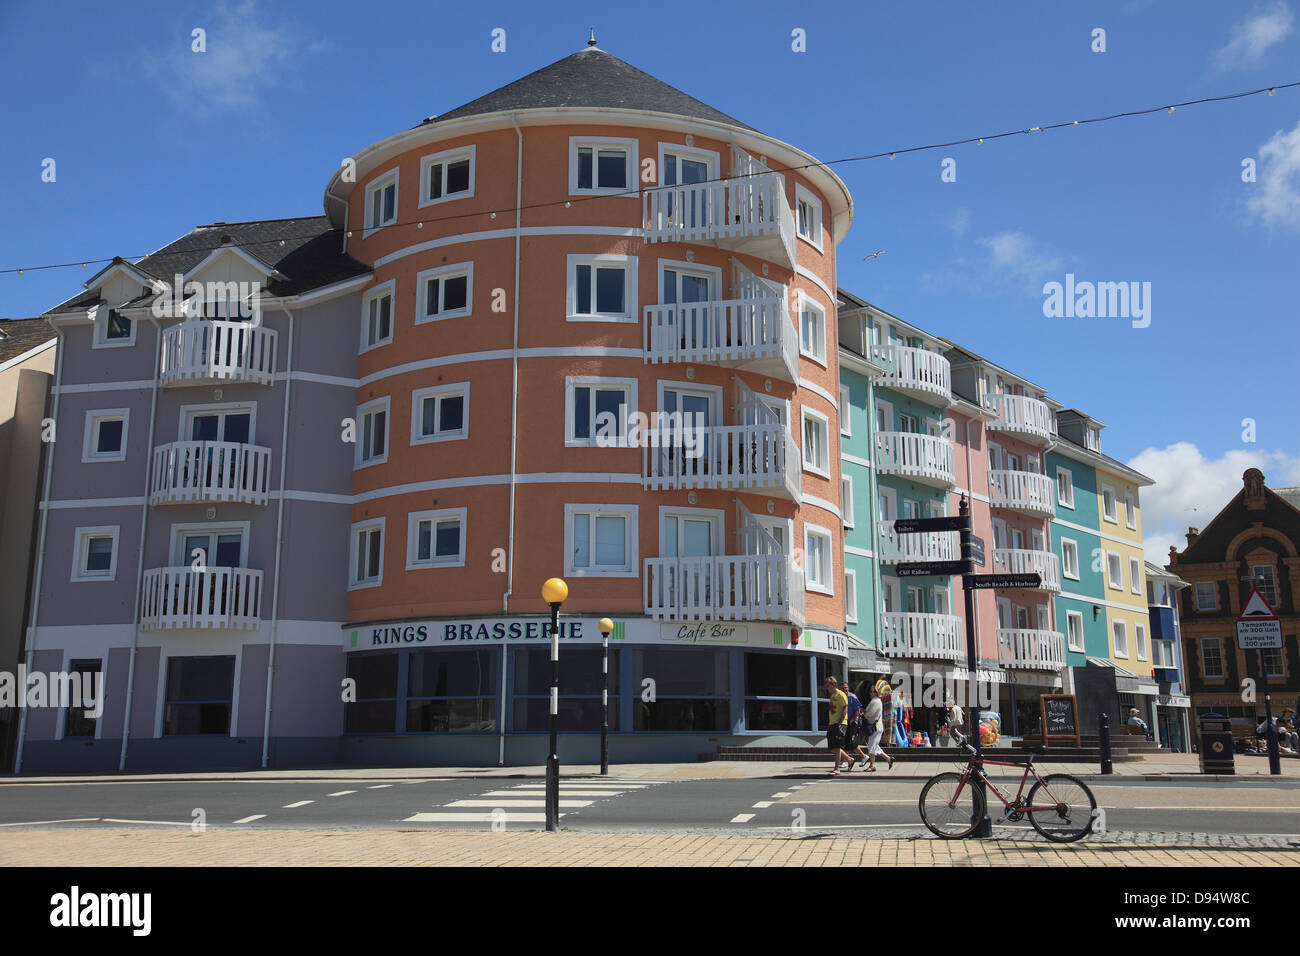 Brasserie and shops at Llys Y Brenin square next to the seafront promenade at Aberystwyth on the west coast of Wales - Stock Image